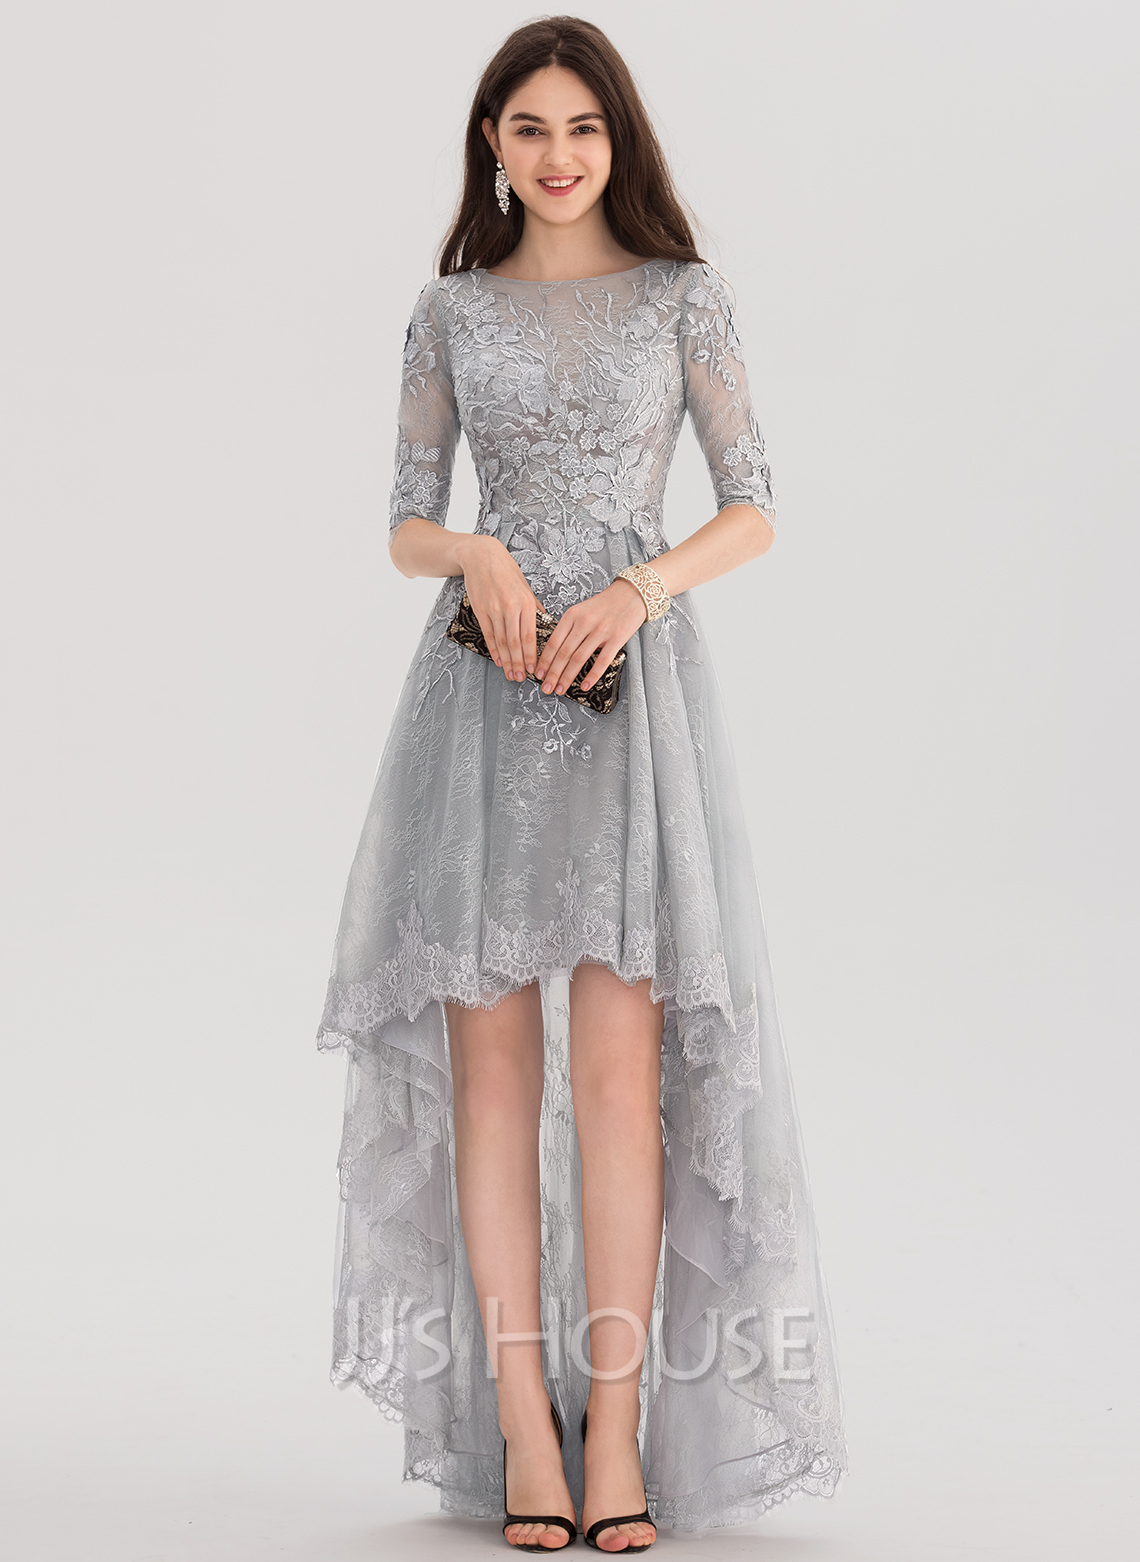 Special Occasion Dresses: Elegant & Formal Dresses | JJ\'sHouse